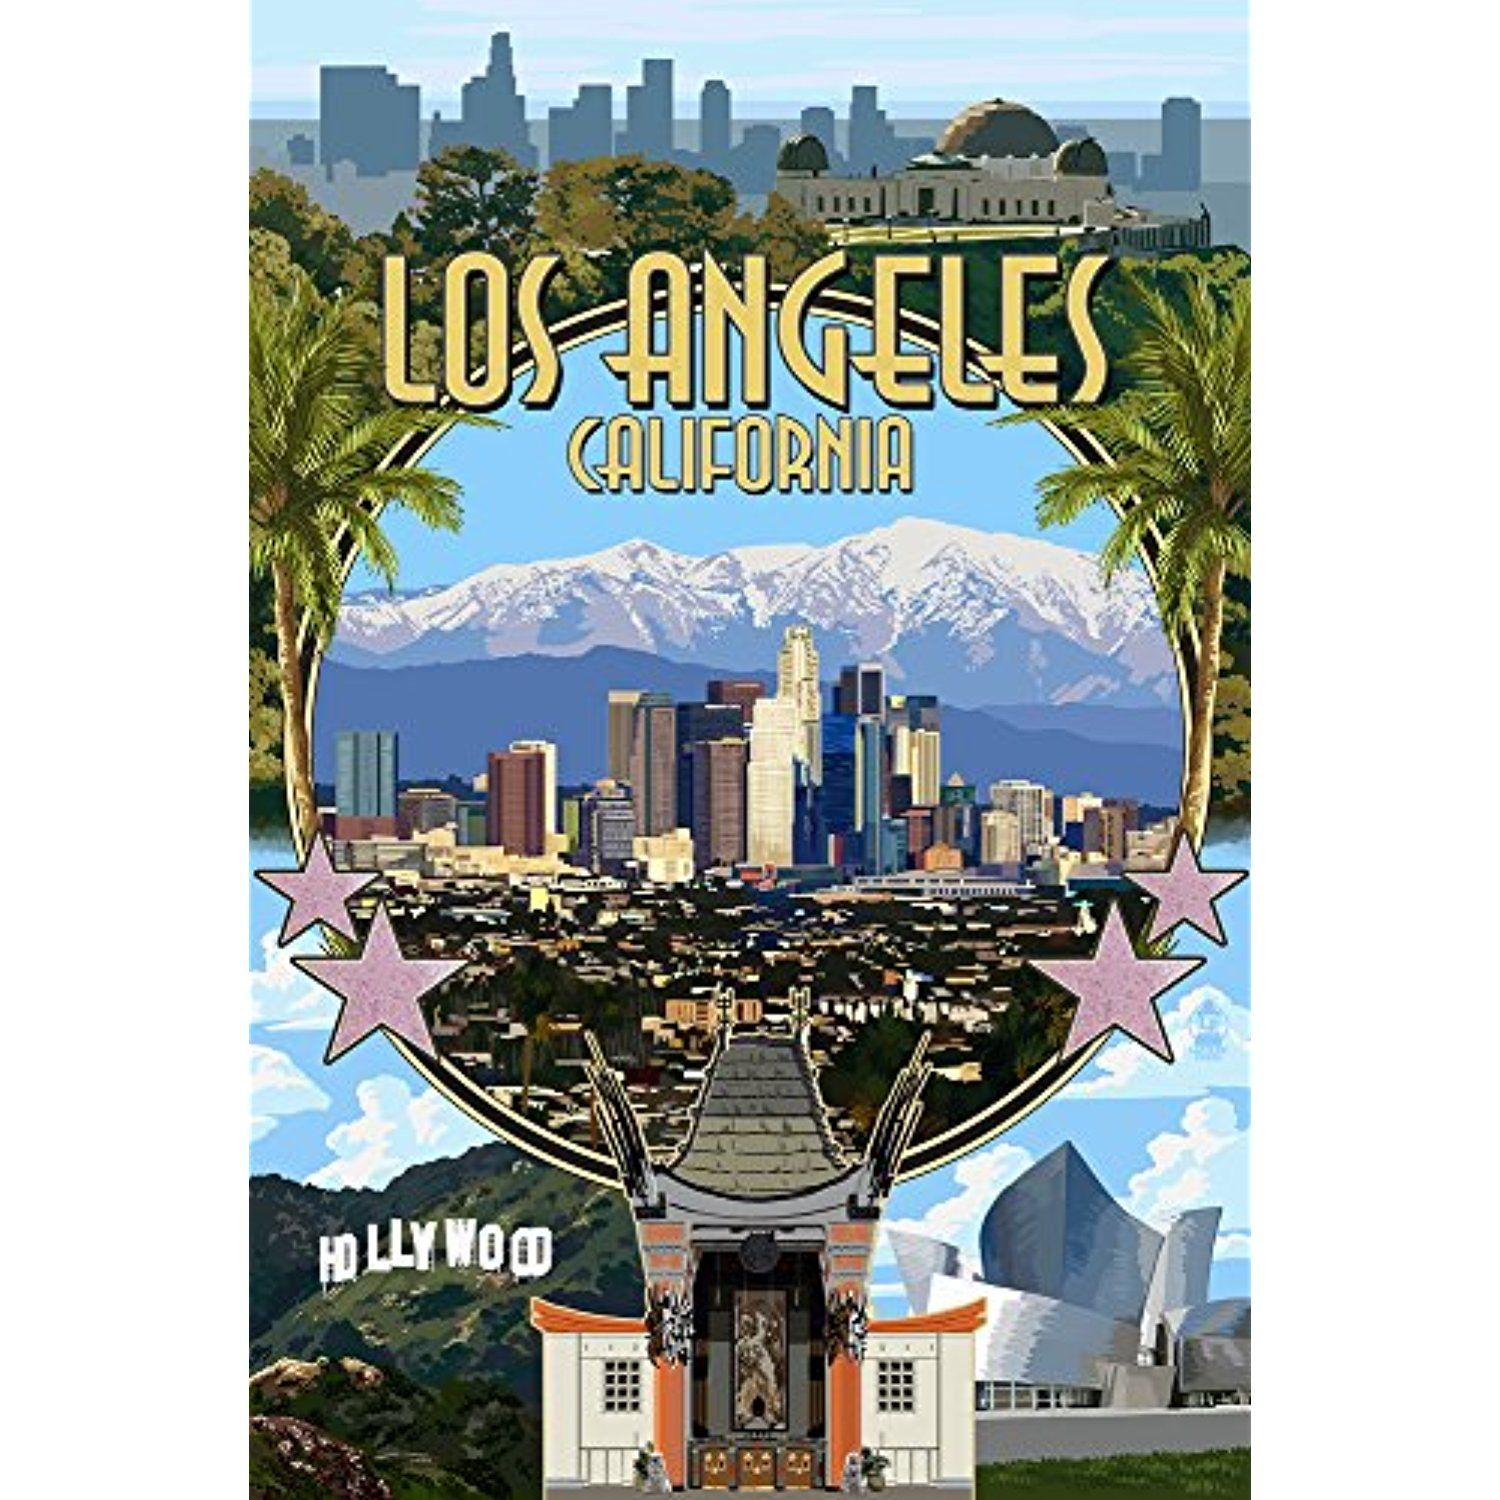 Los Angeles, California Montage (12x18 SIGNED Print